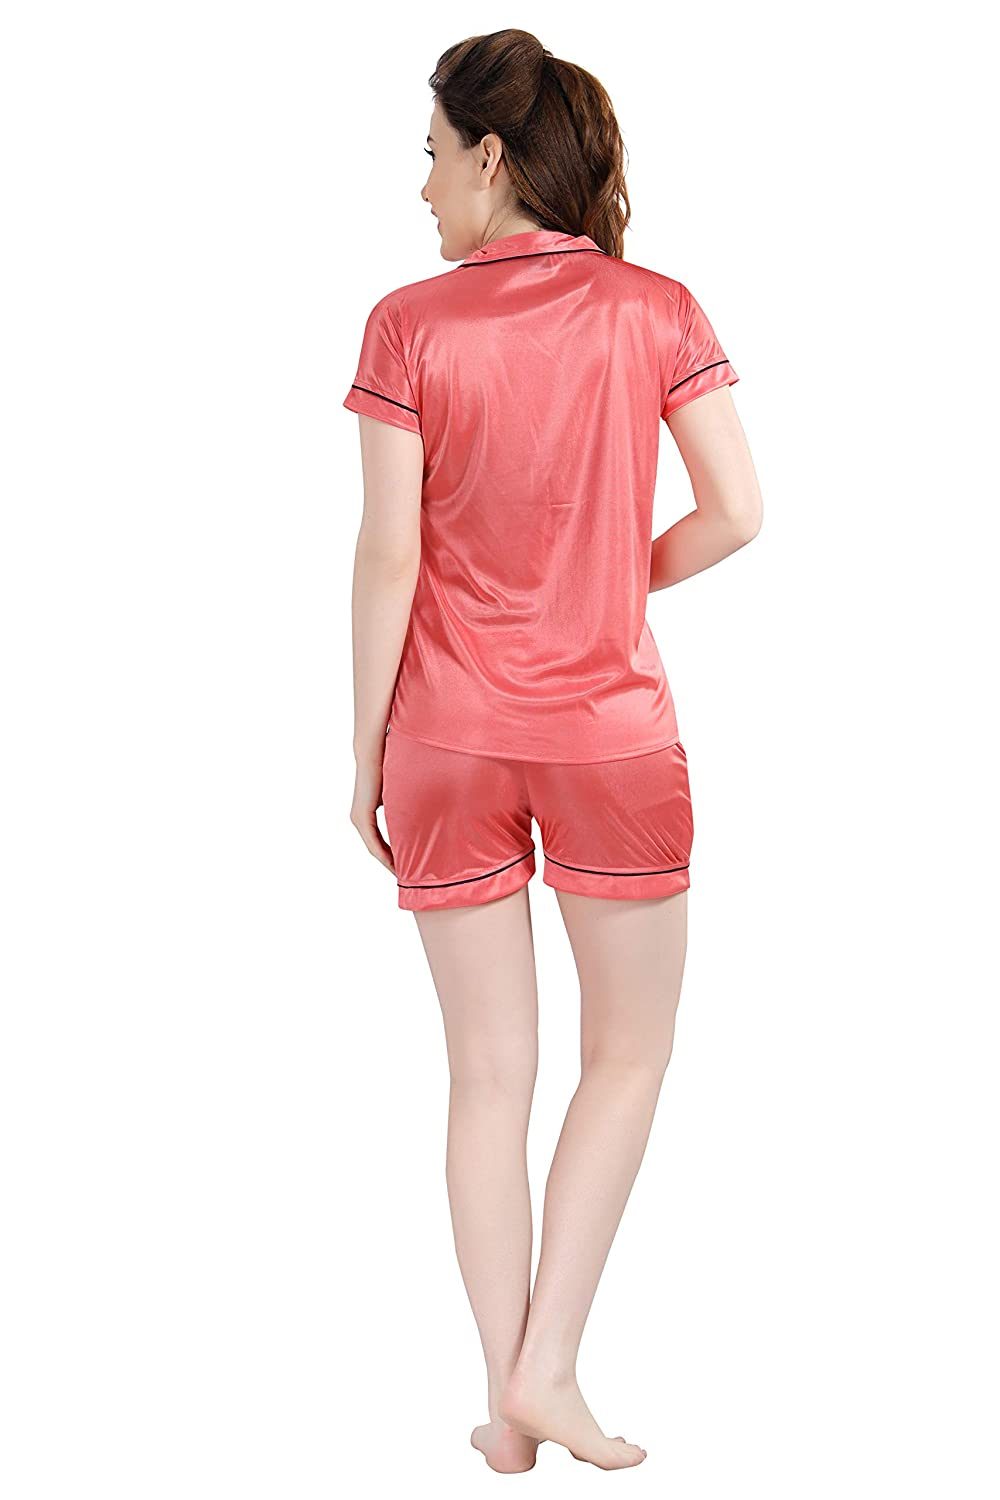 POUR FEMME Women Satin Short Sleeve Top and Shorts Nightsuit Set0187A